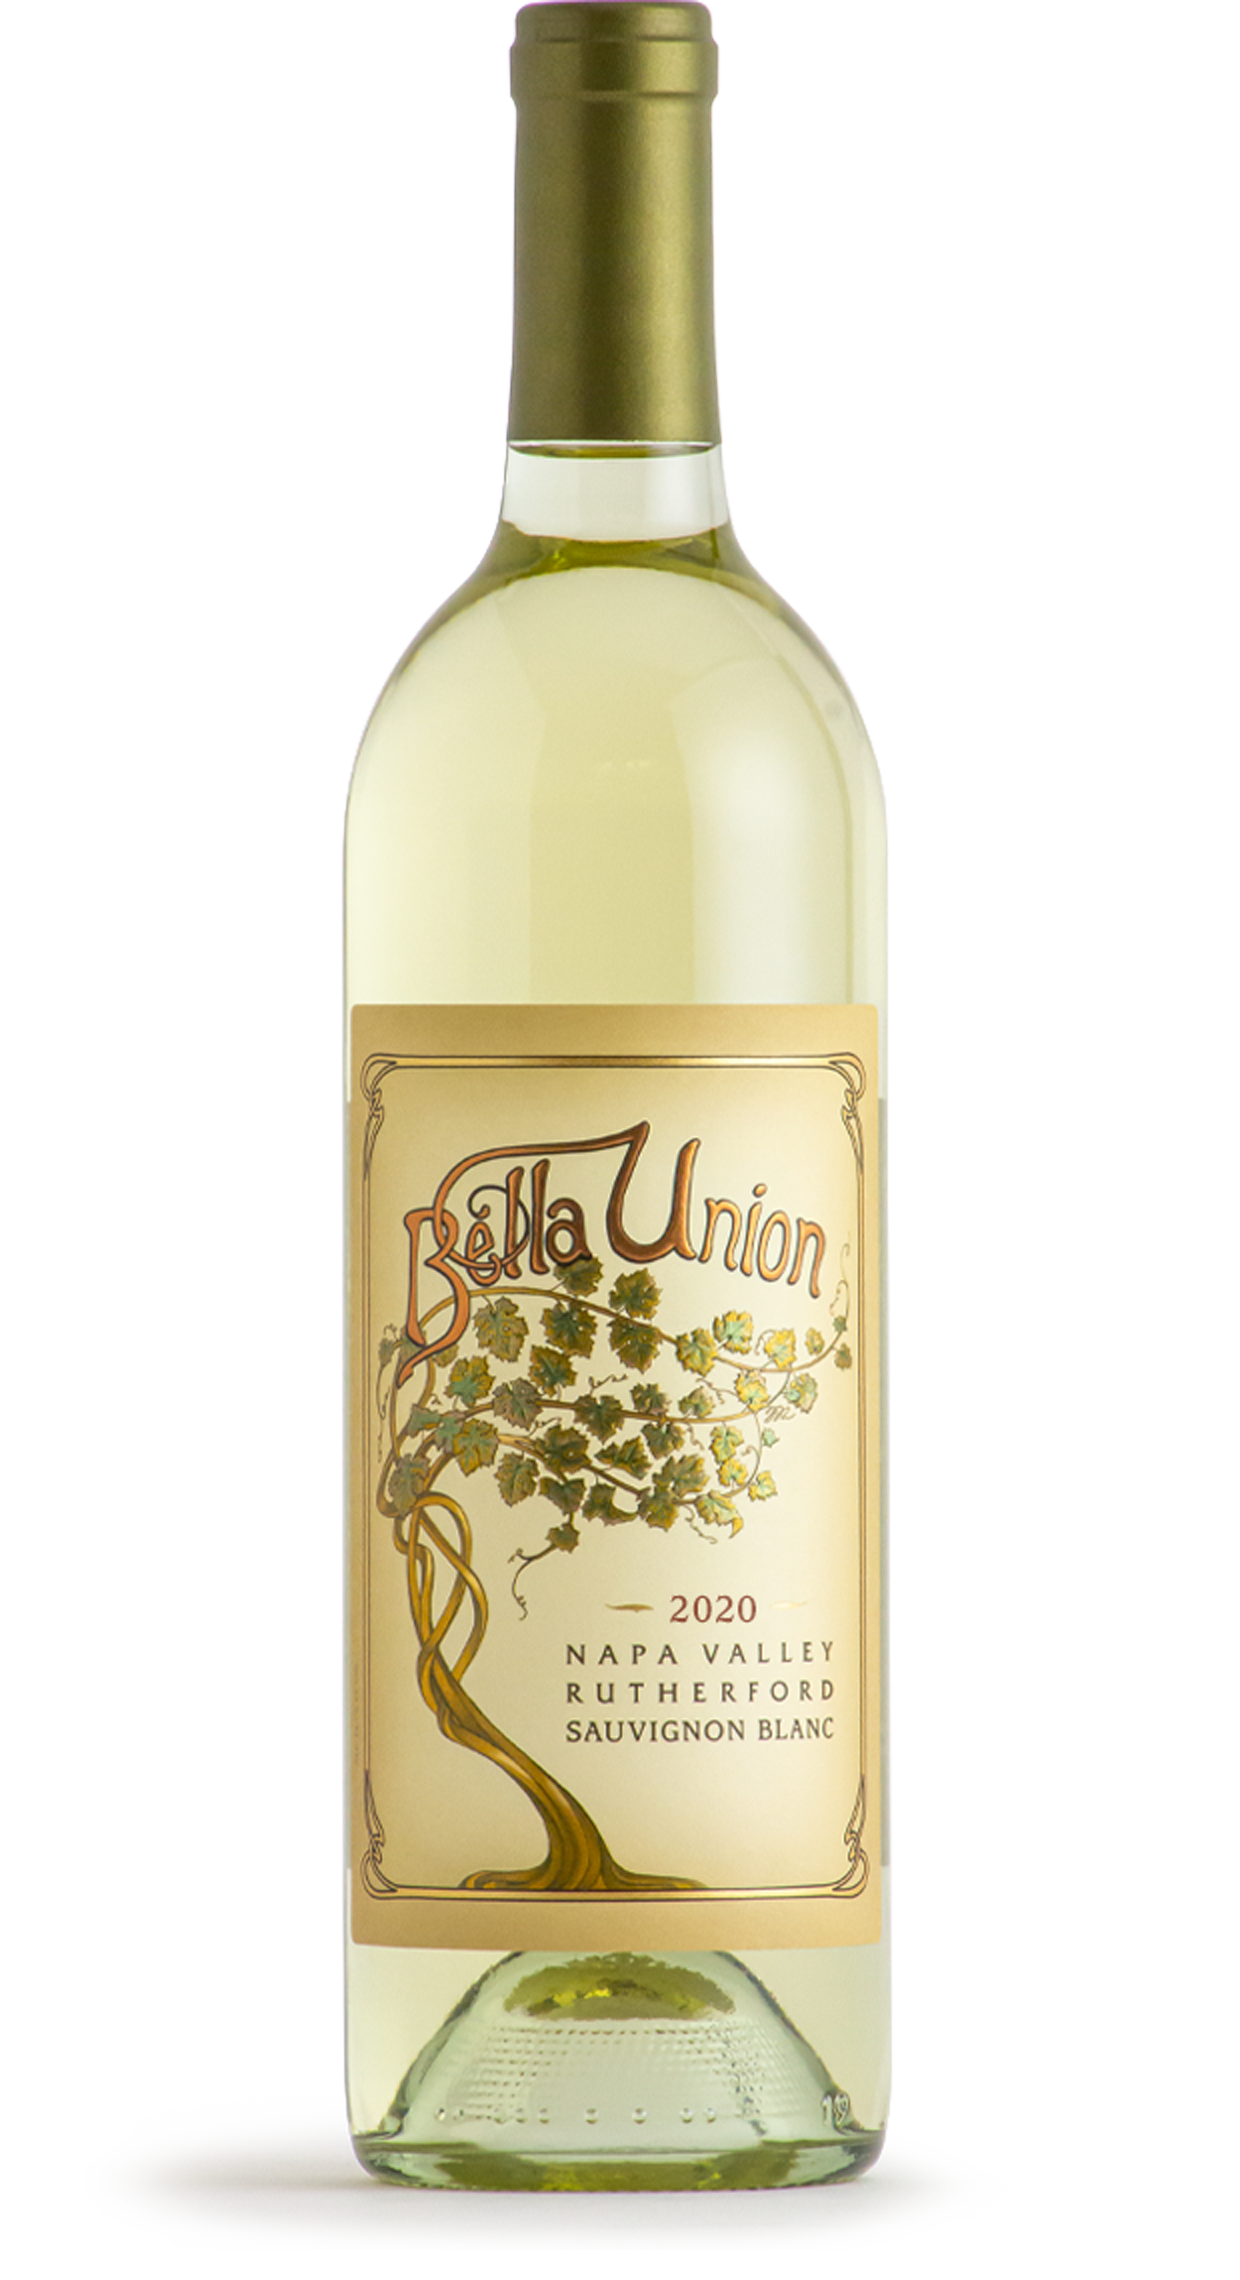 2020 Bella Union Sauvignon Blanc, Napa Valley